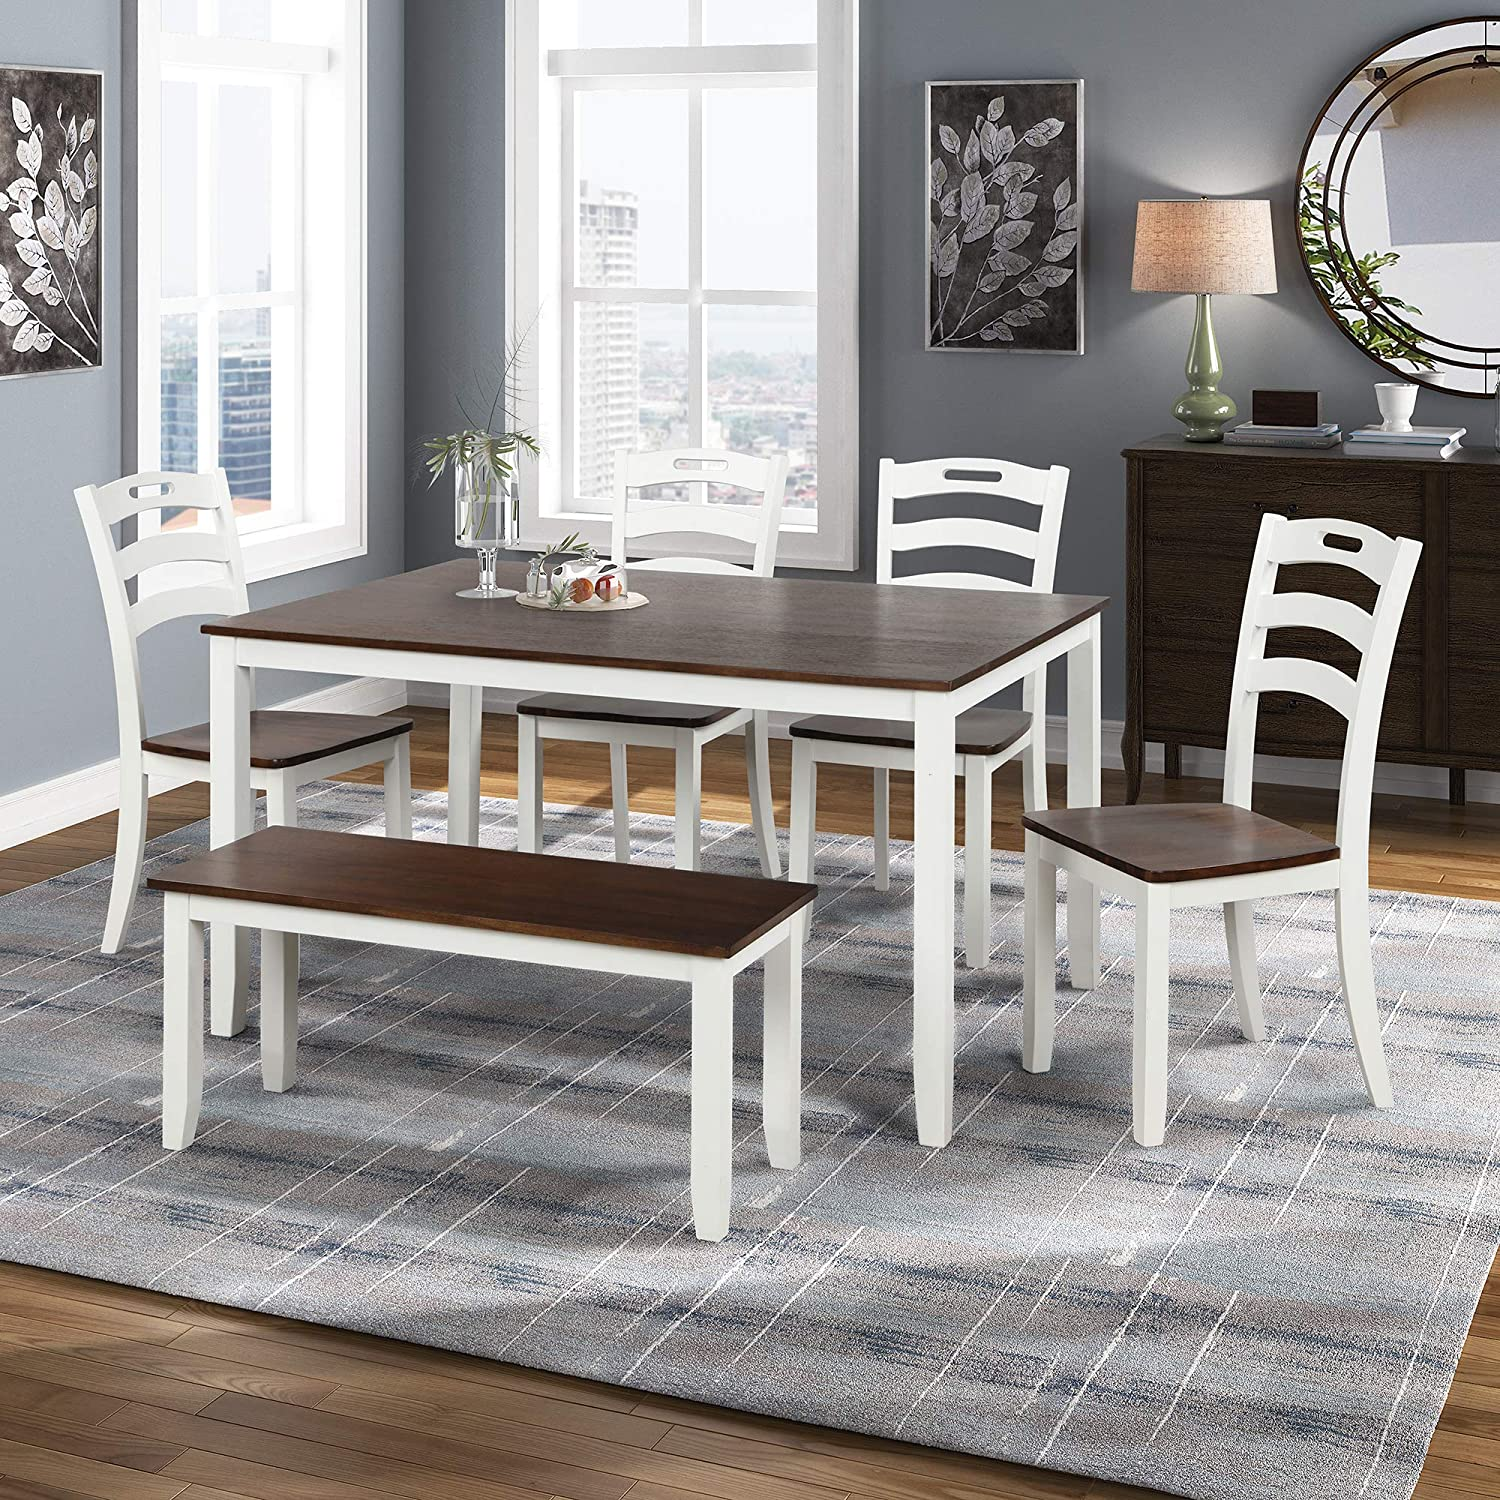 Buy Merax Dining Table Sets, 9 Piece Wood Kitchen Table Set, Home ...